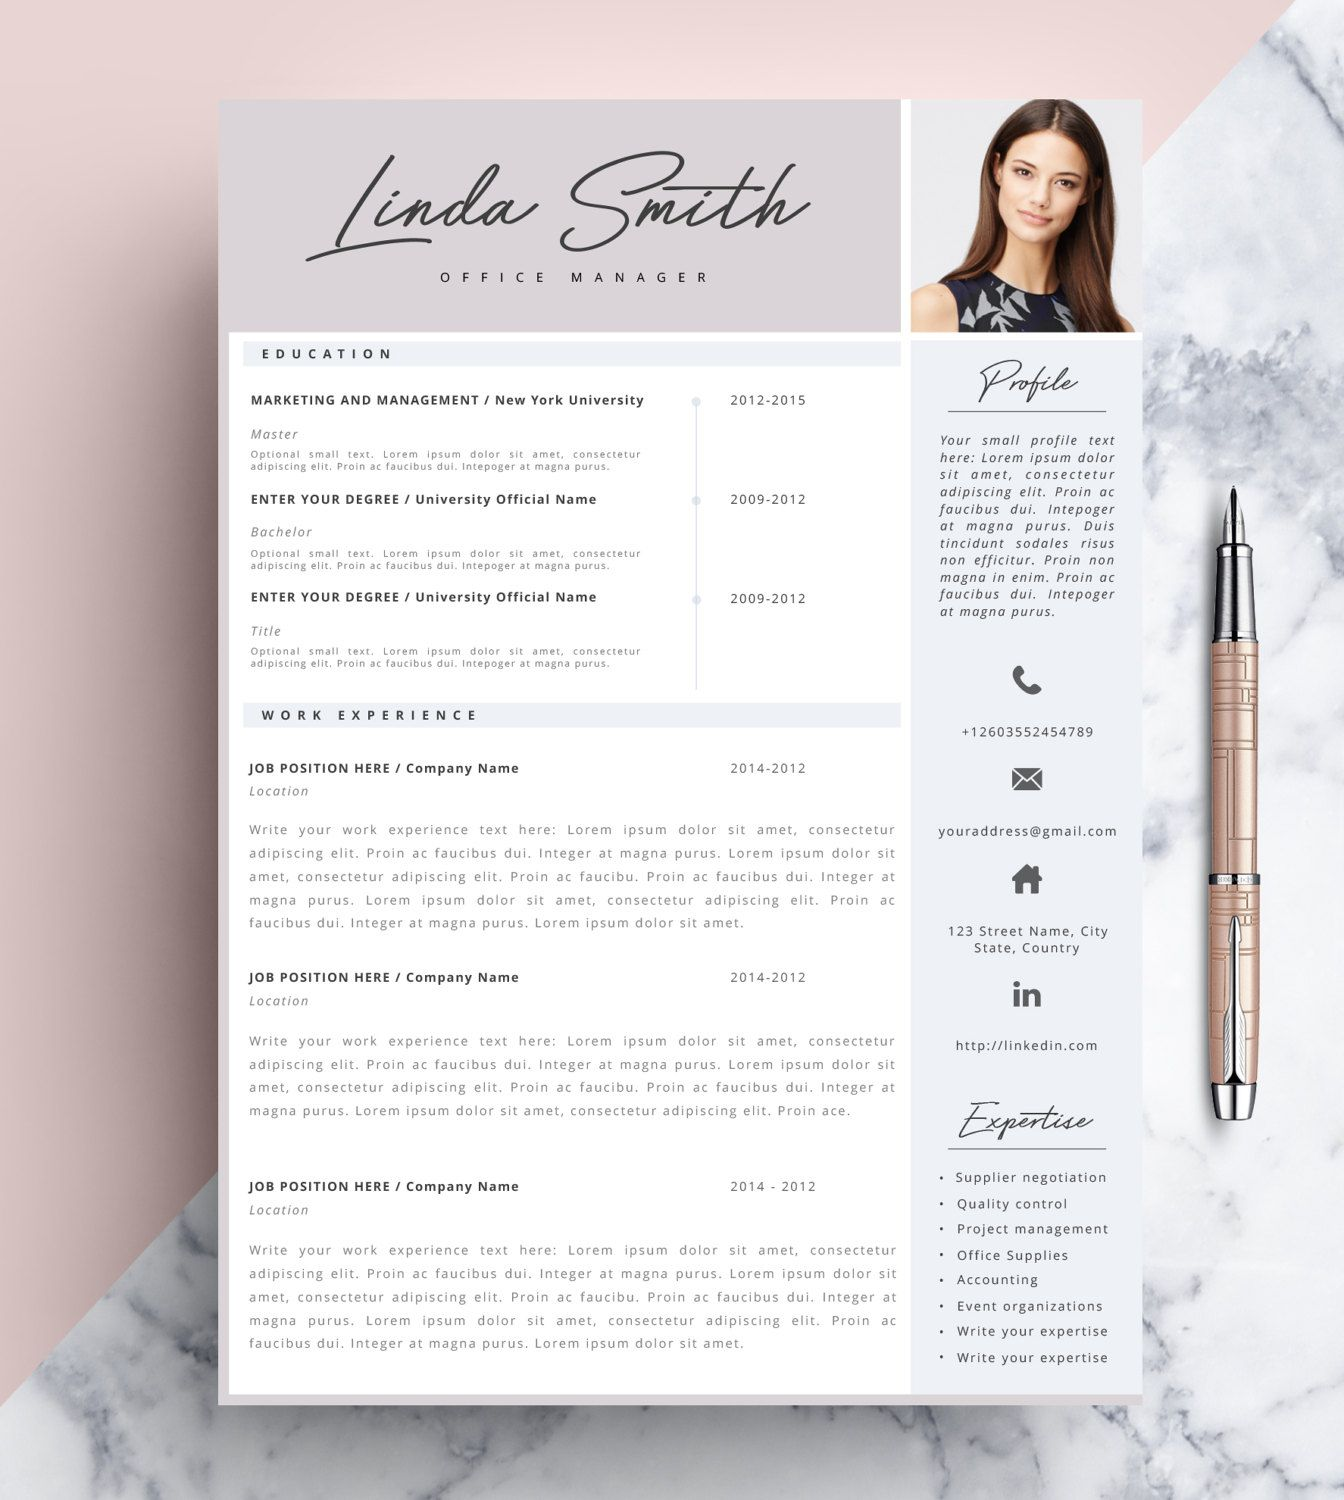 Professional Resume Template, Cv Template Editable In Ms Word And